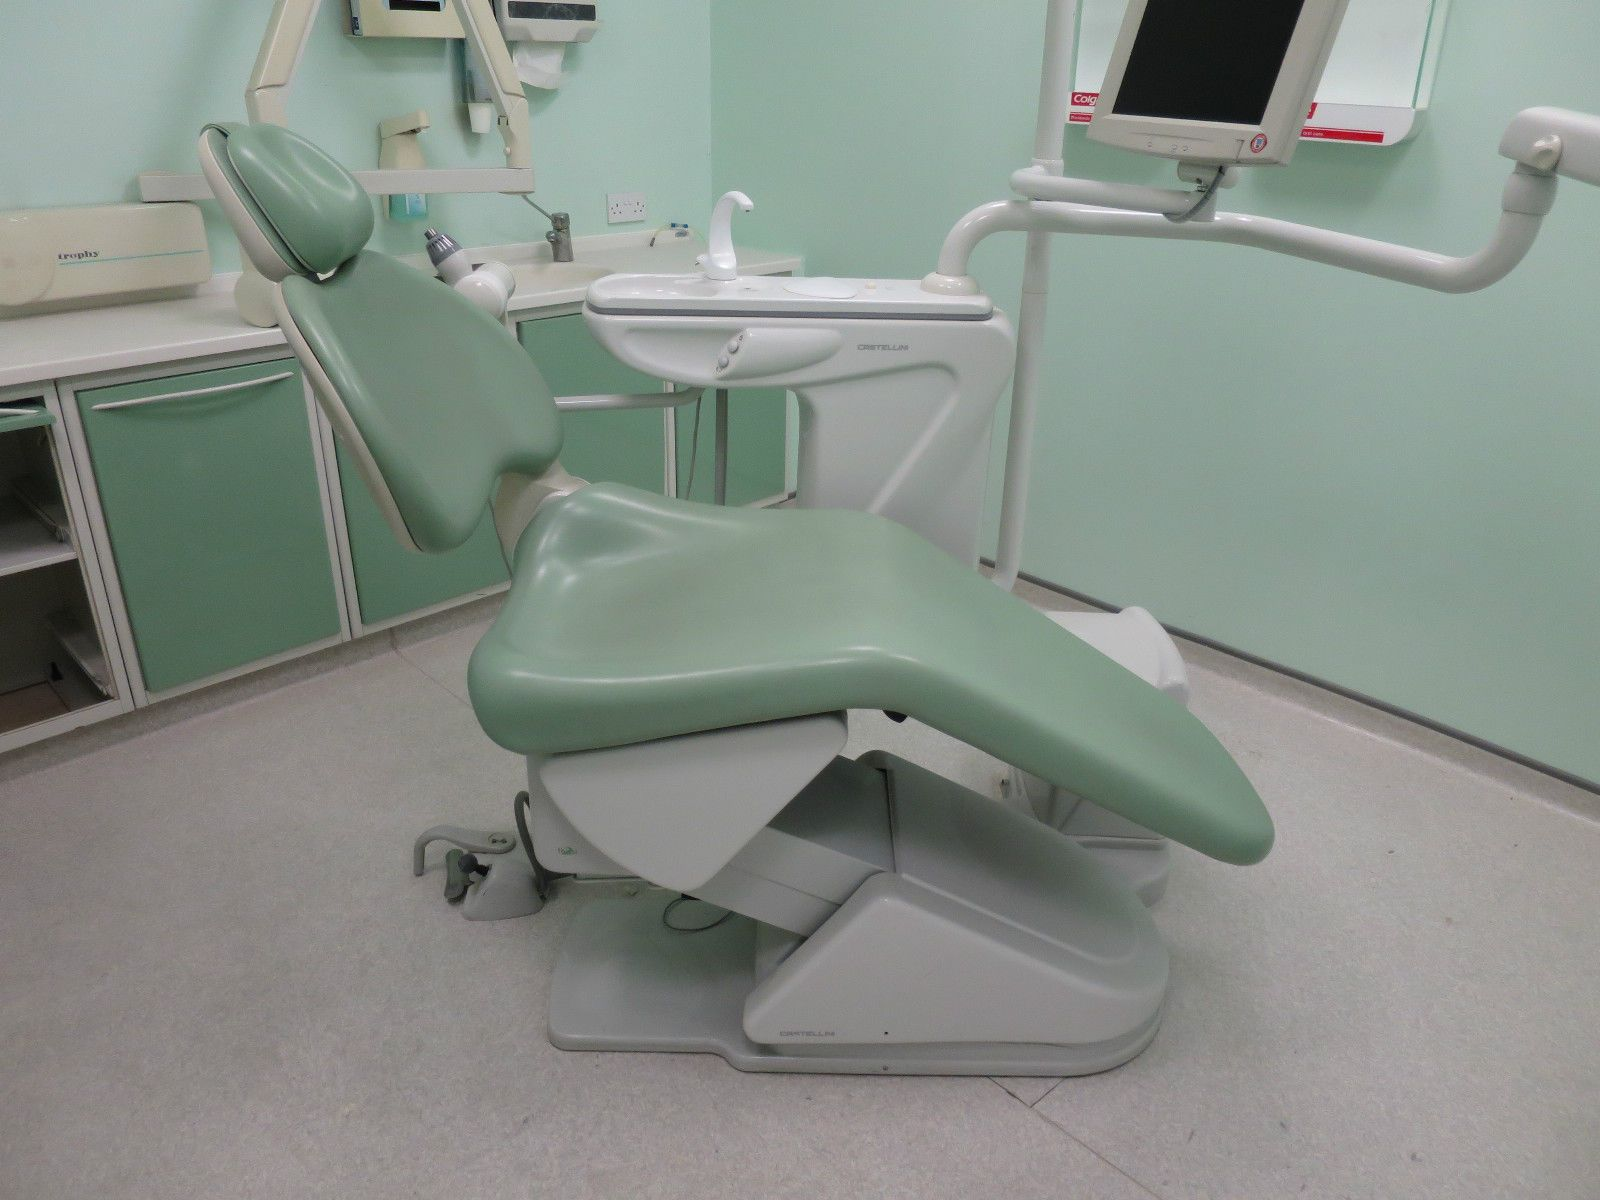 Thesi 2 Puma Dental Surgery Examination Chair Dentist Delivery Unit